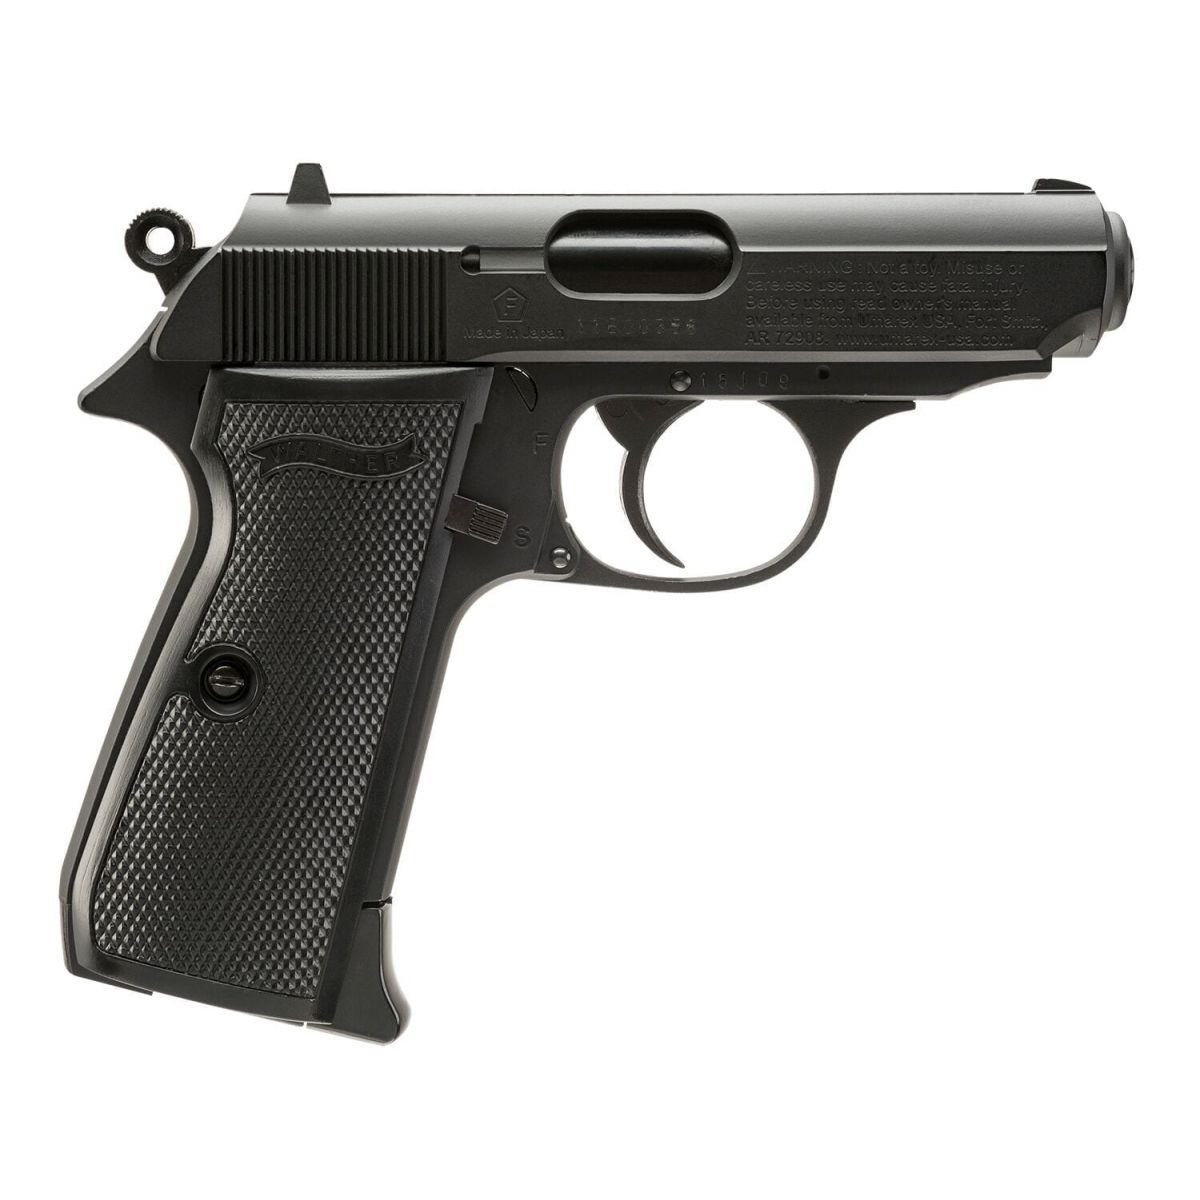 WALTHER-ppks-co2-pistol-air-gun-black